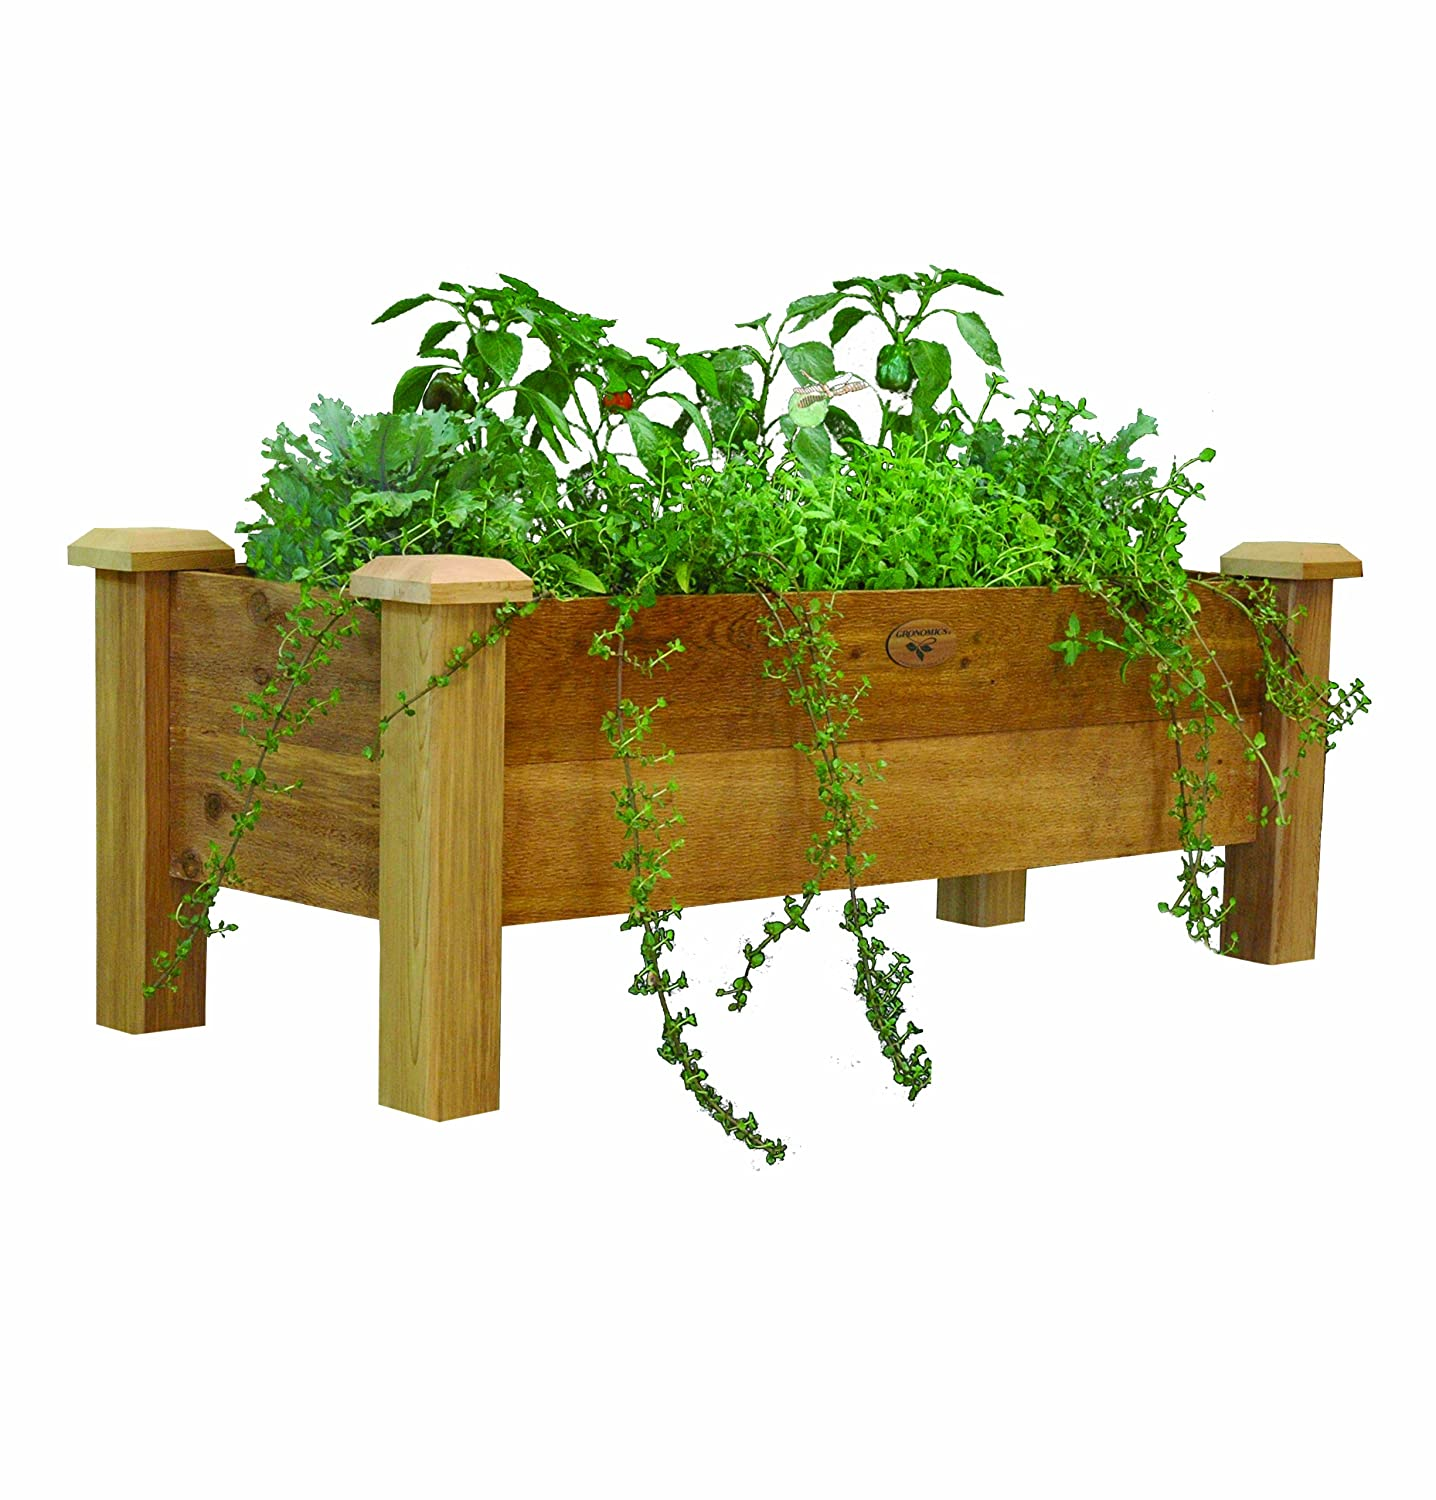 planters planter box best designs boxes bamboo wooden coriver plant pots garden cedar homes